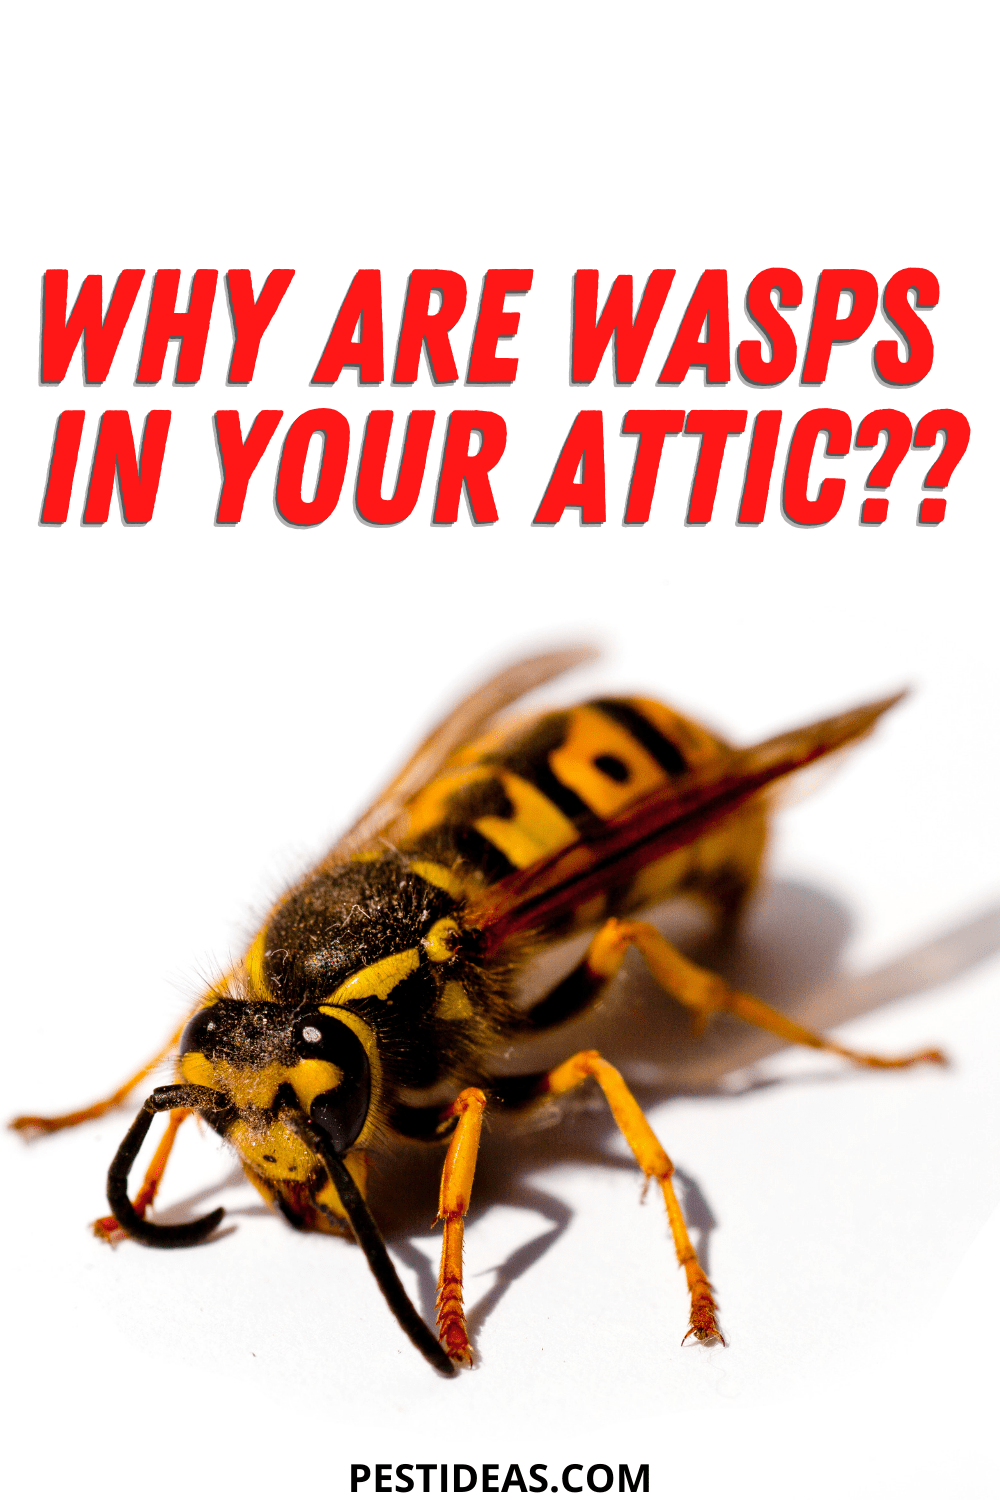 Why are wasps in your attic